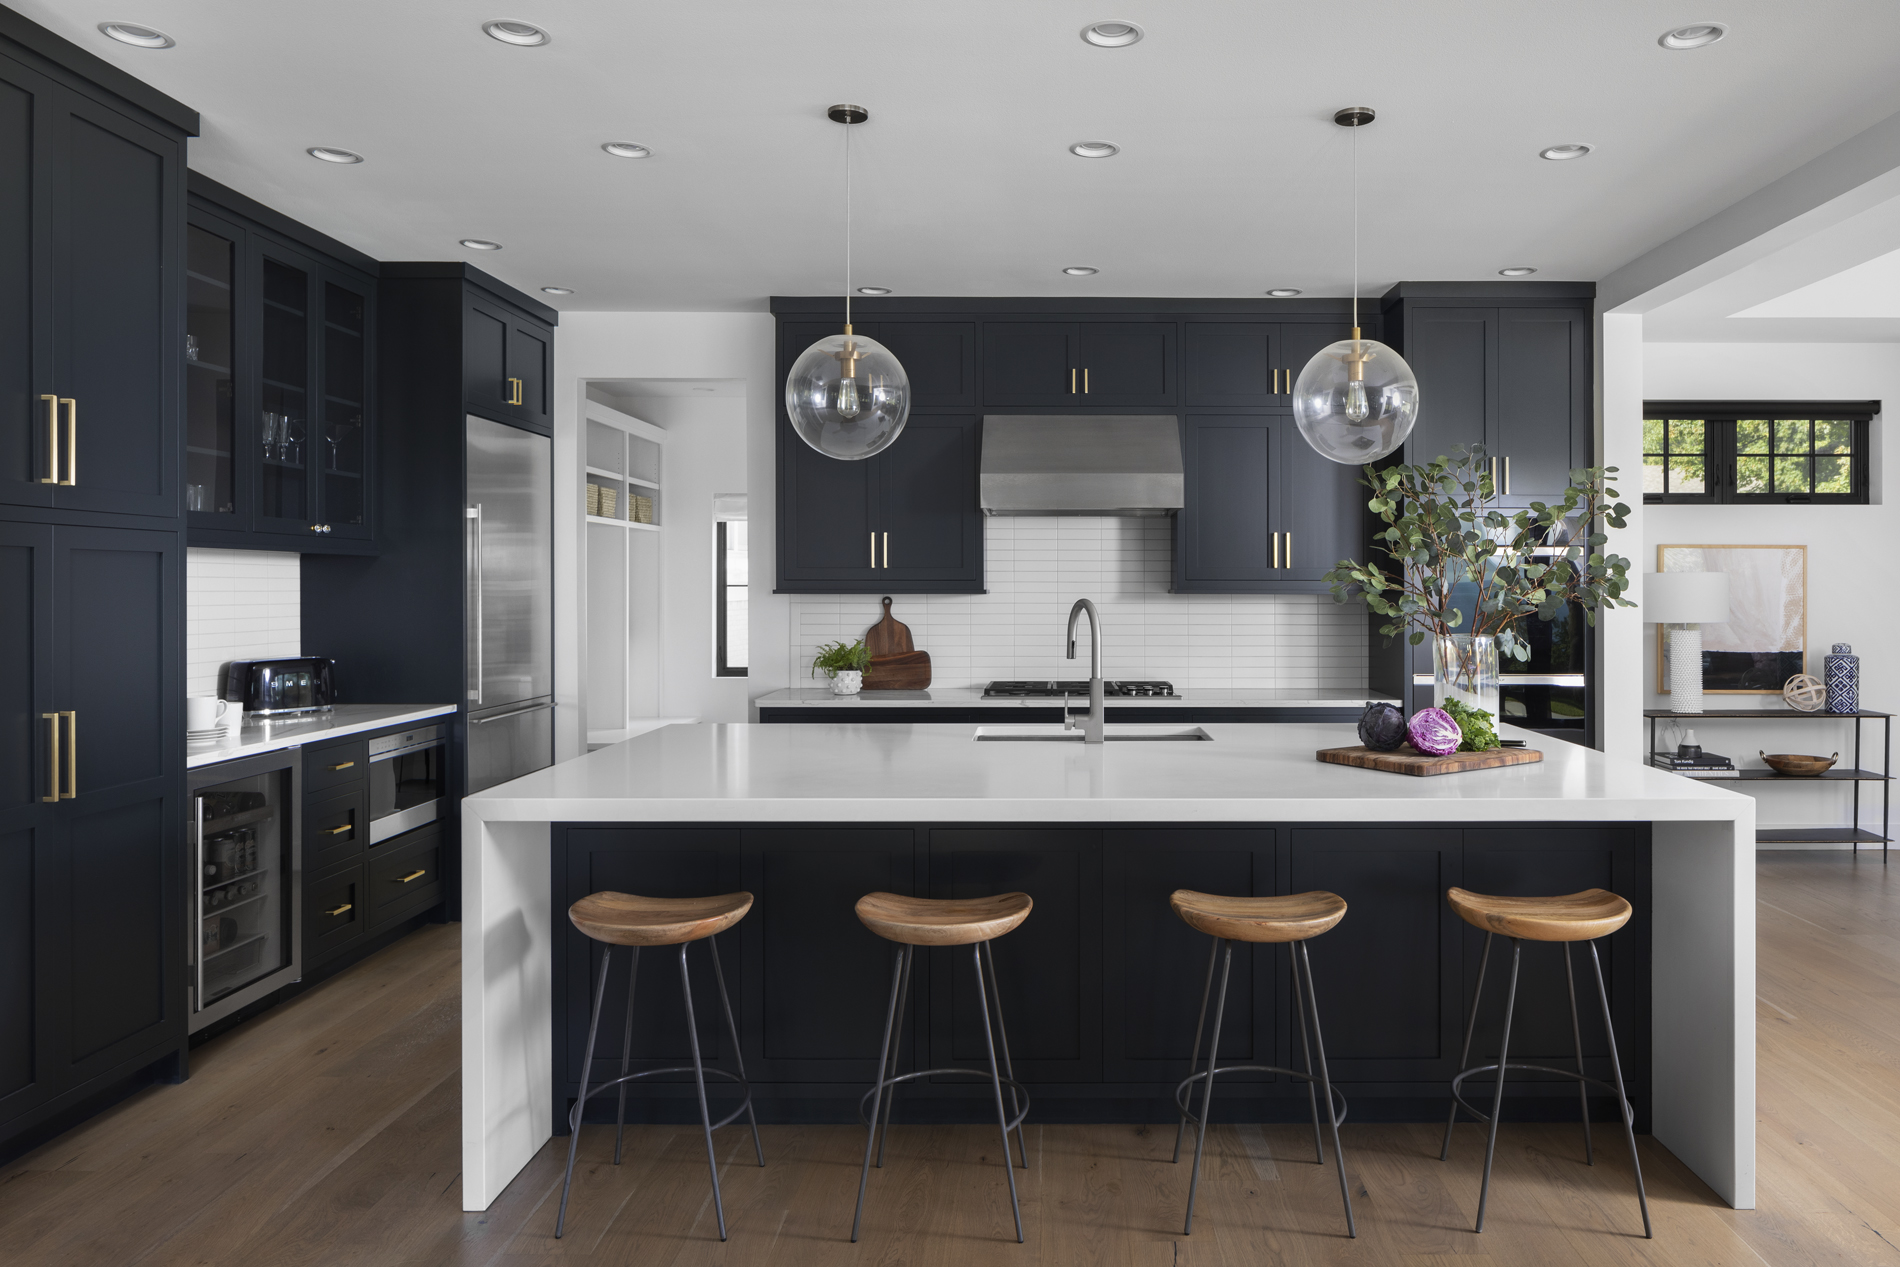 New Kitchen Design Ideas Modern Clean Navy Cabinets Brushed Gold Accents Lakeside Development